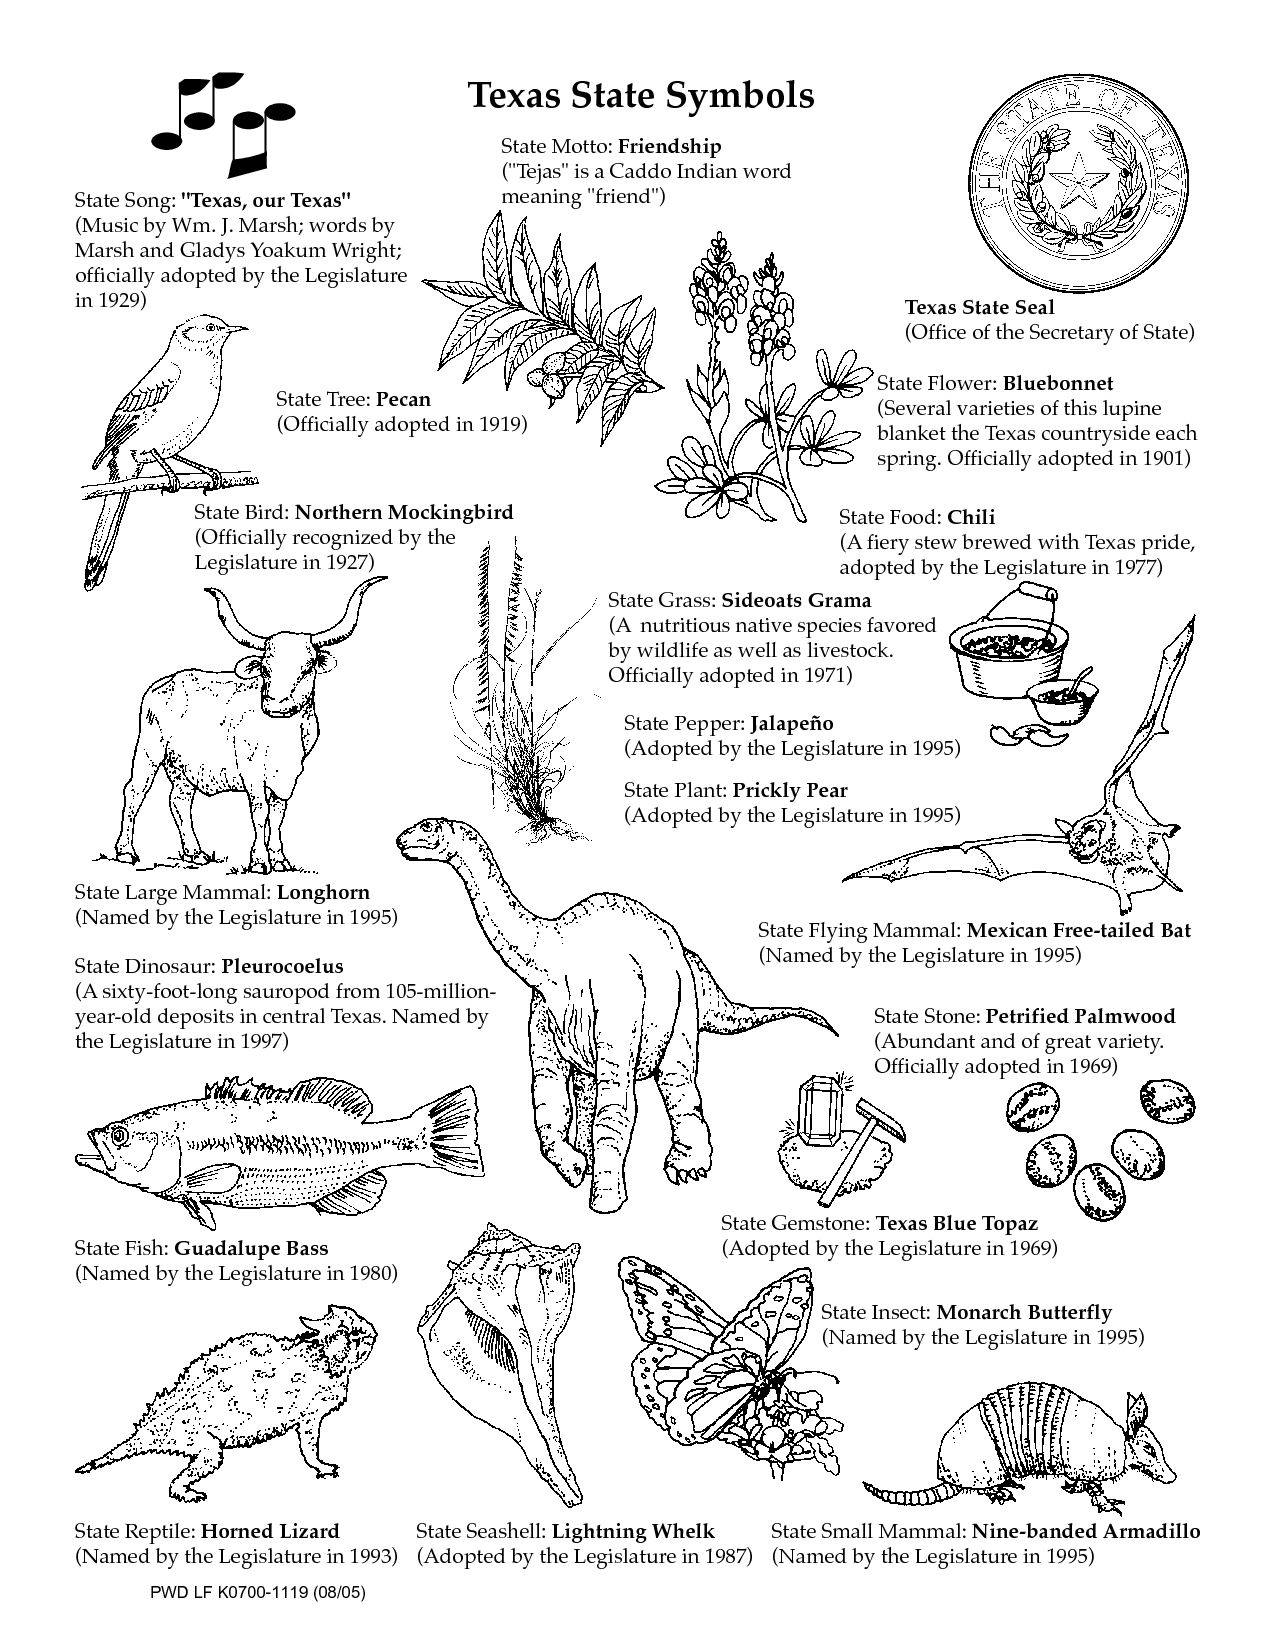 Texas Symbols Worksheets | Texas State Symbols Coloring Pages ...